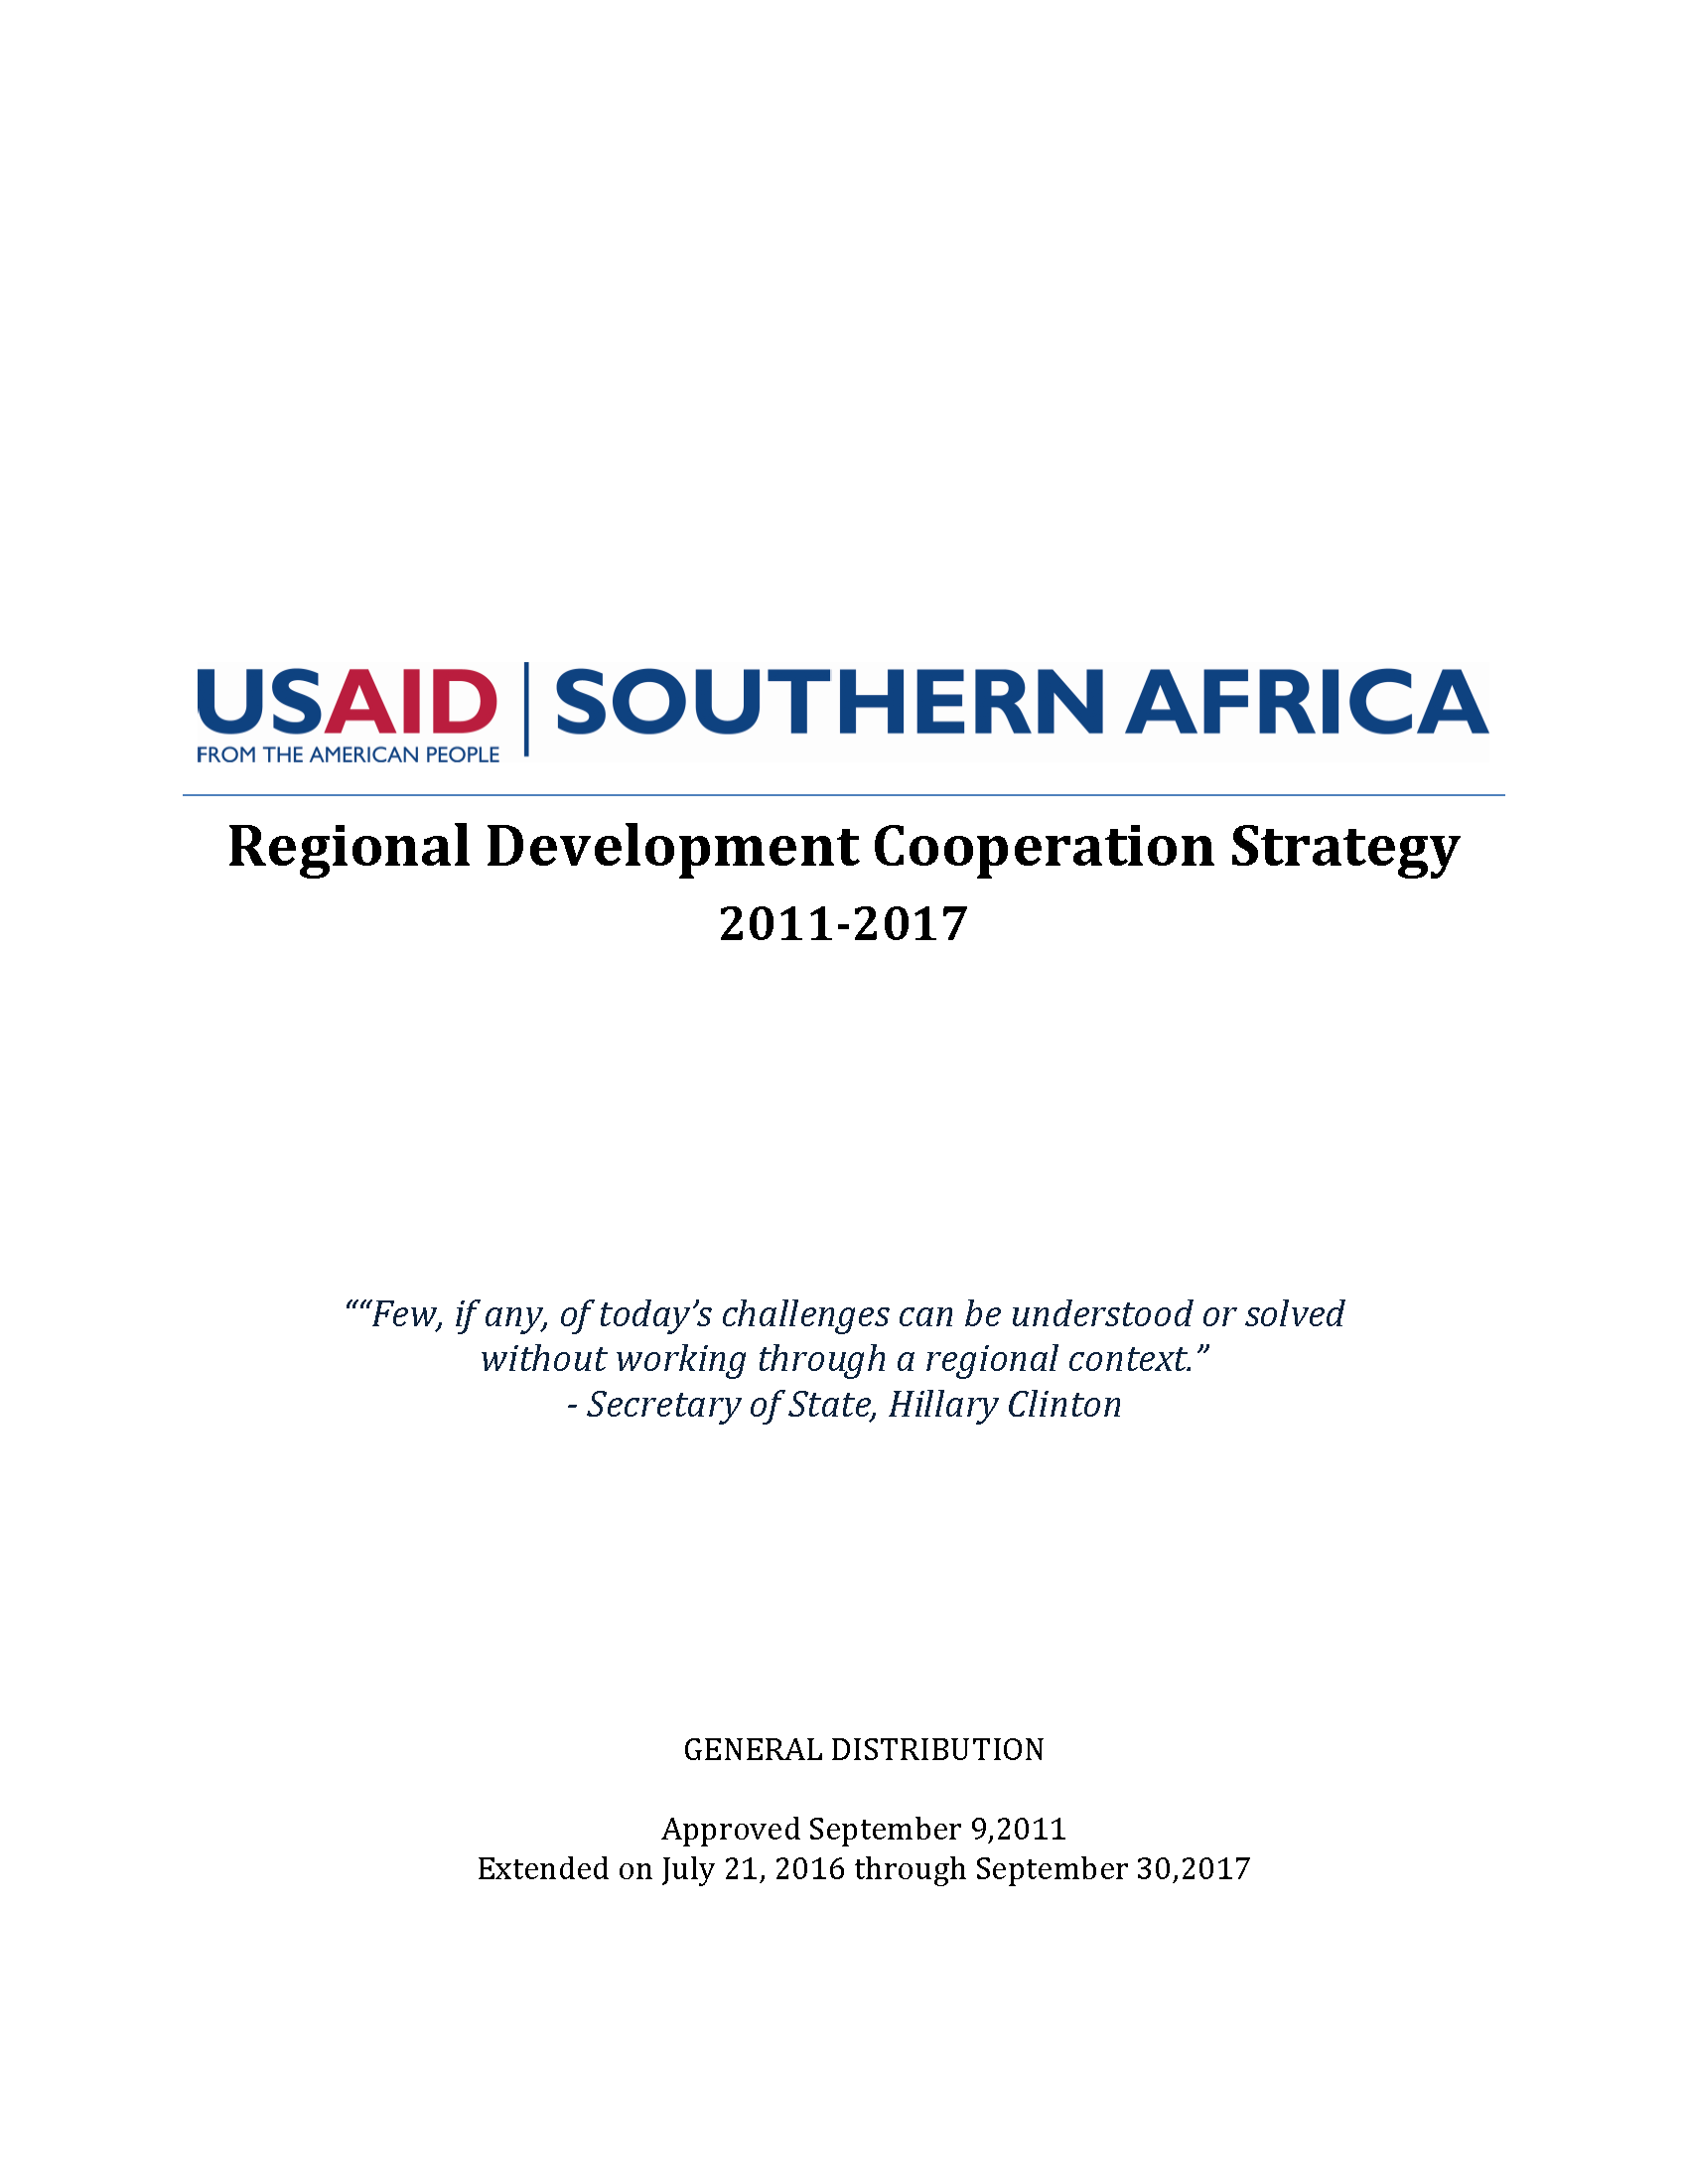 USAID Southern Africa Regional Regional Development Cooperation Strategy 2011-2017